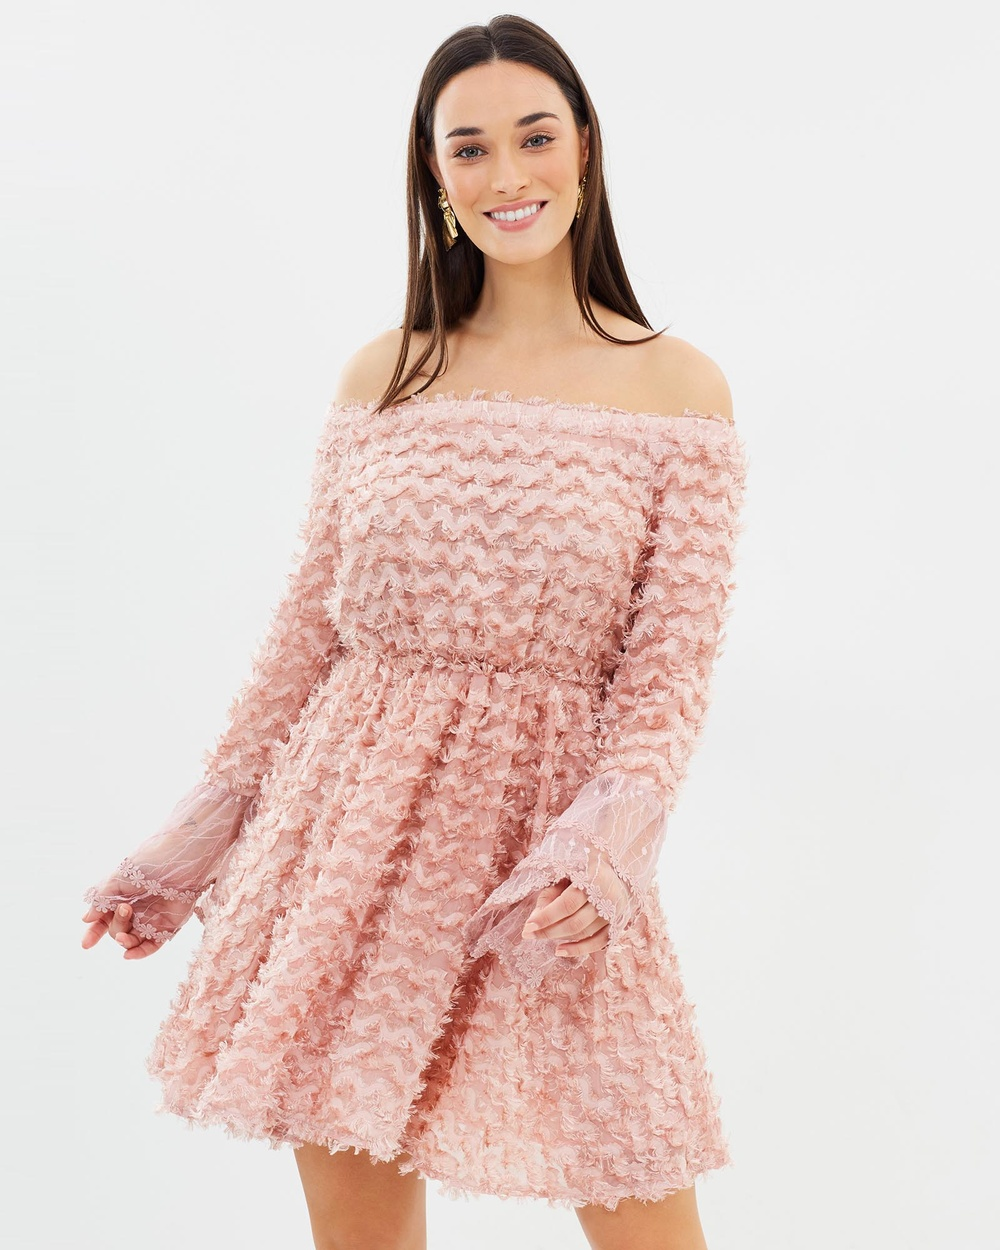 ROXCIIS Sally Fringe Dress Dresses Dusty Pink Sally Fringe Dress